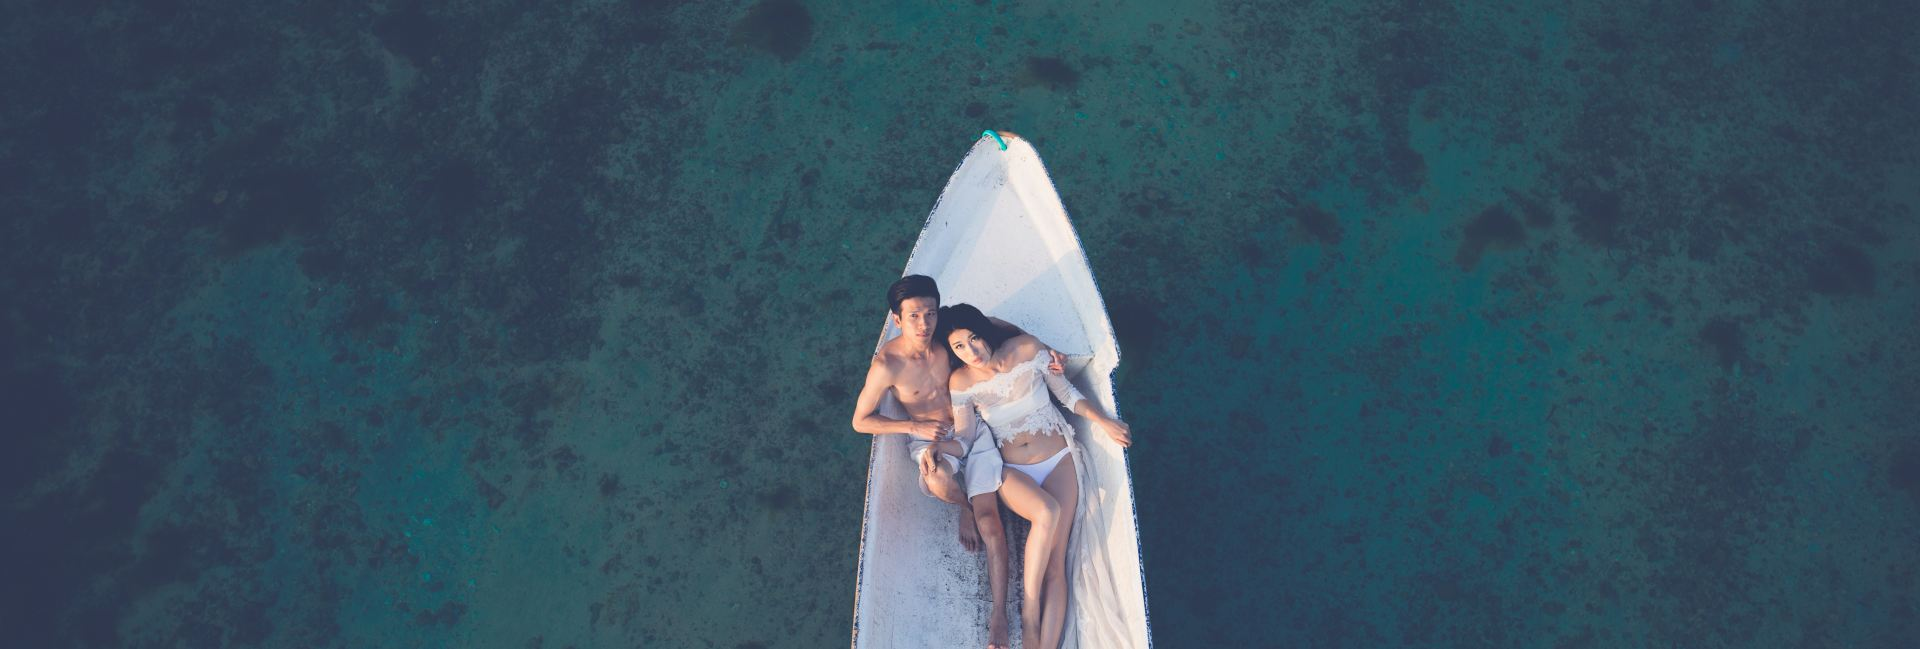 conseils-mariage-canicule